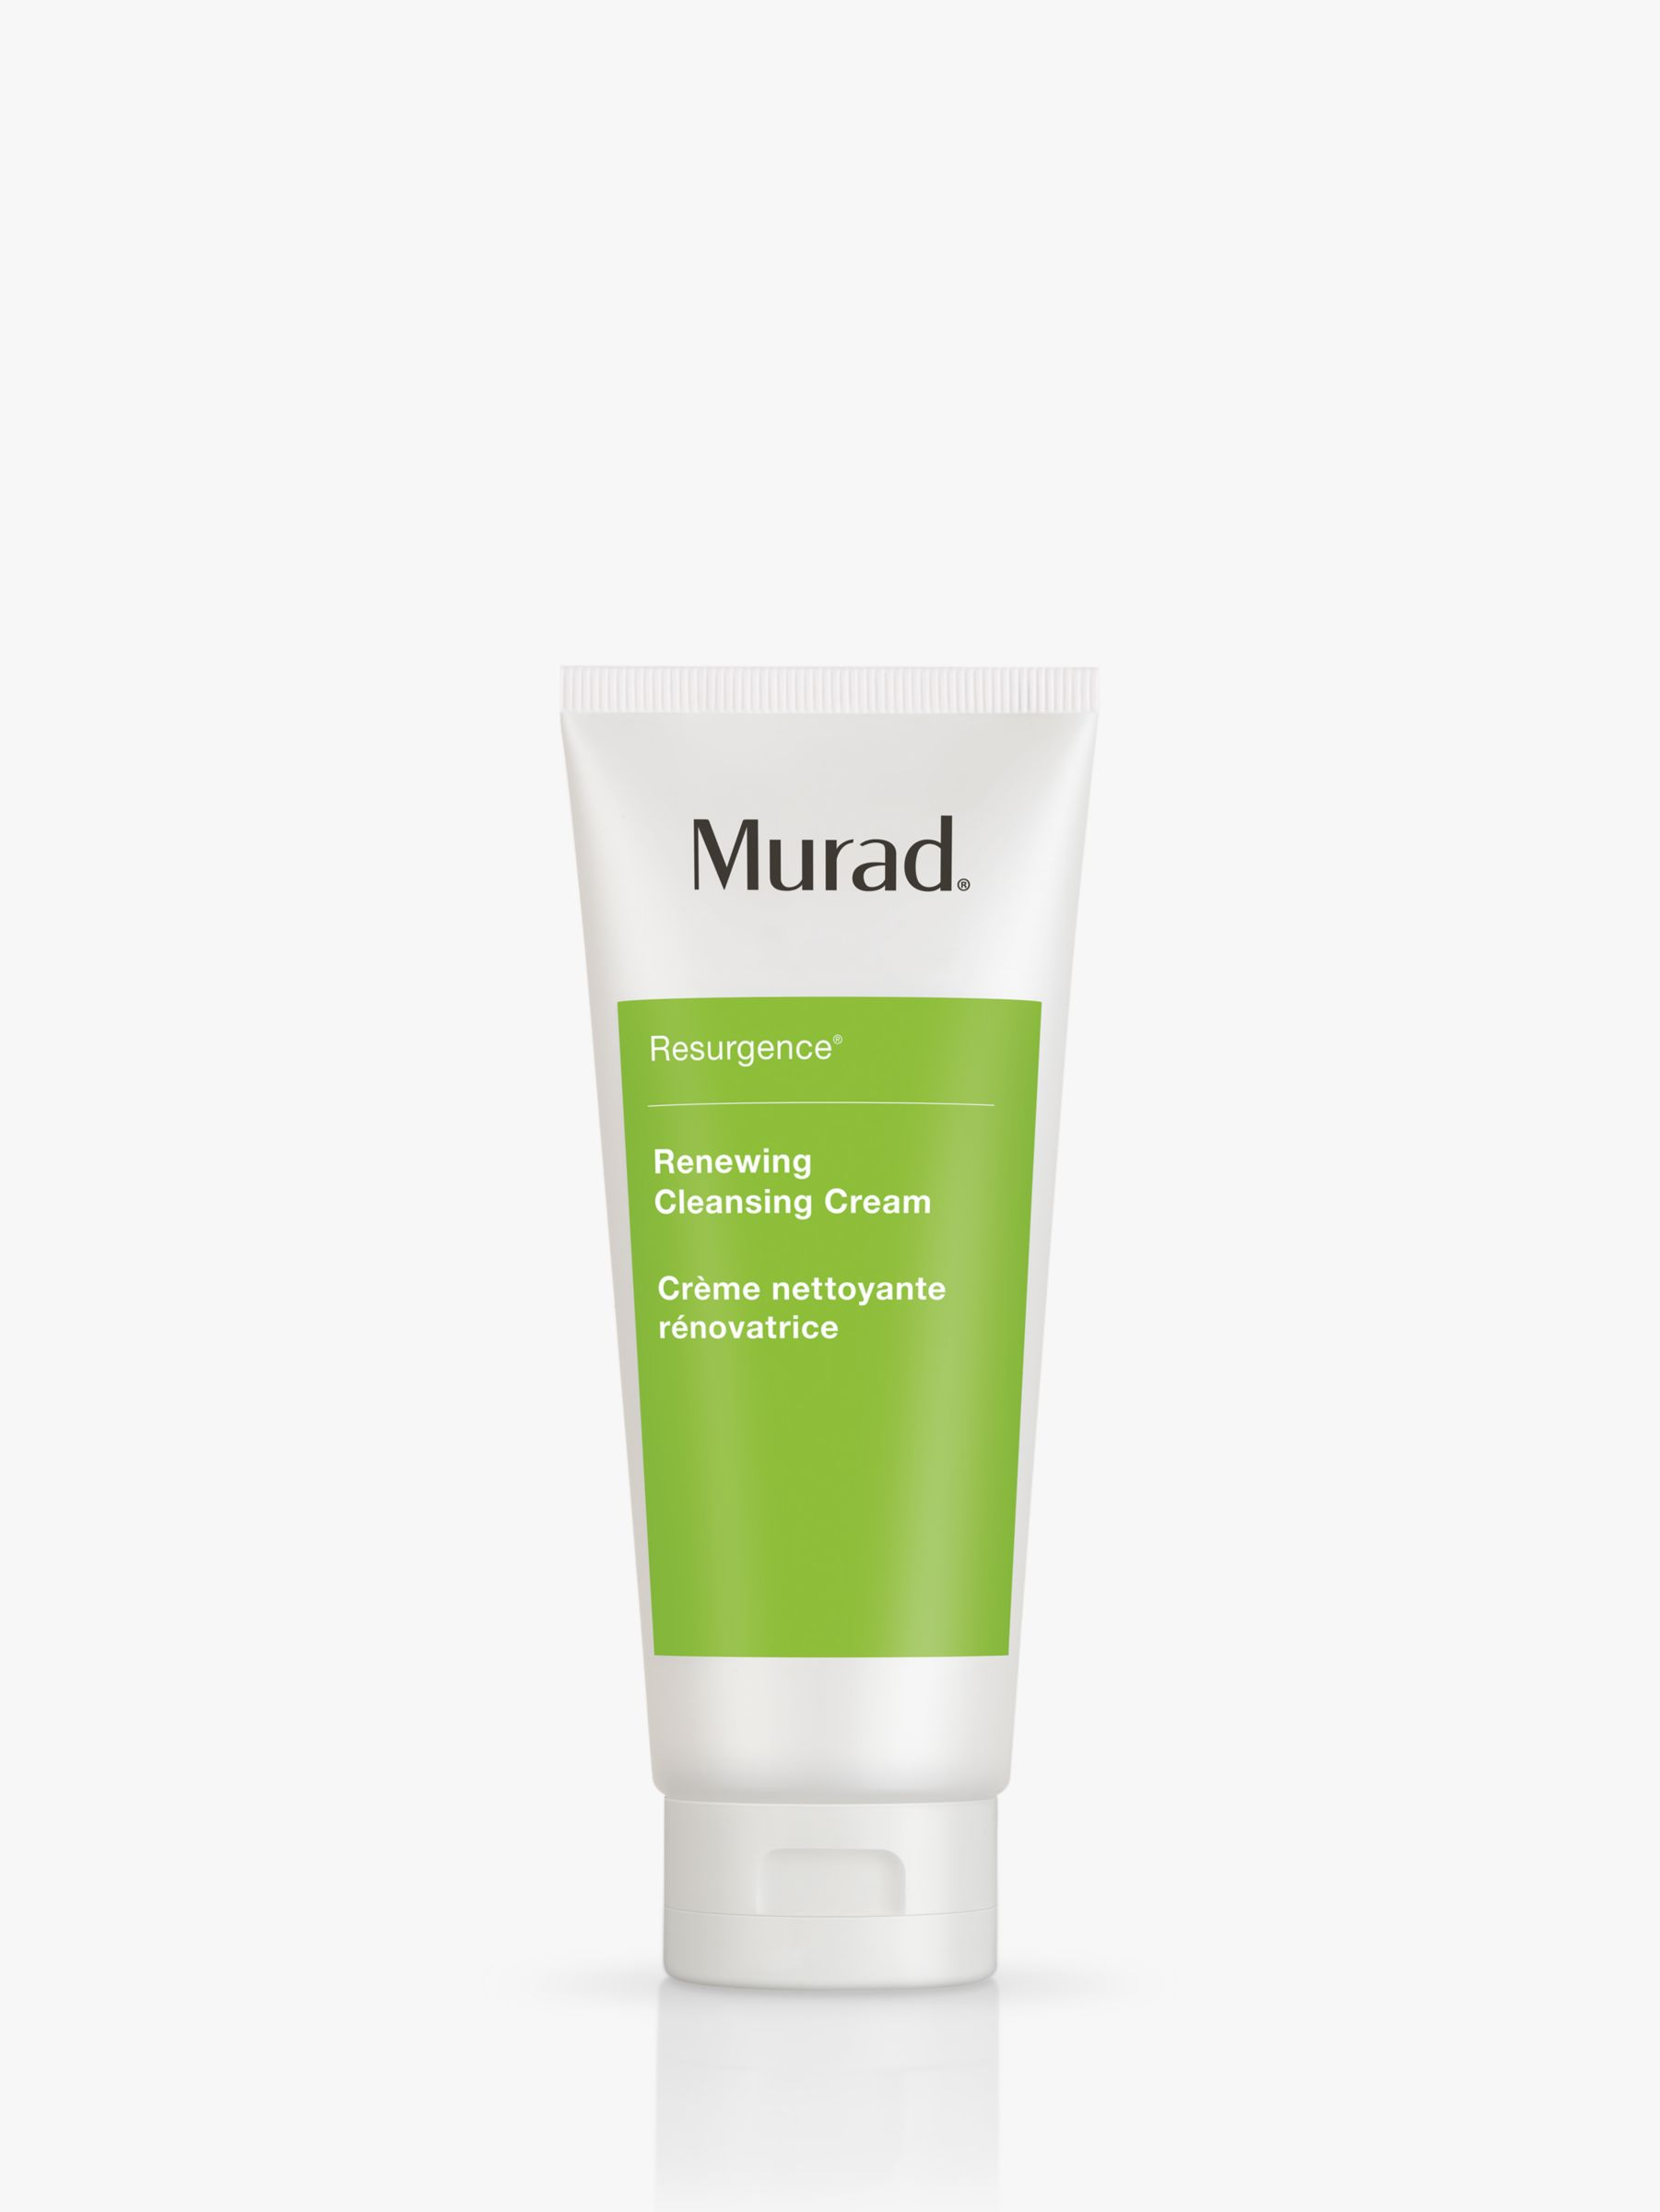 Murad Murad Renewing Cleansing Cream, 200ml